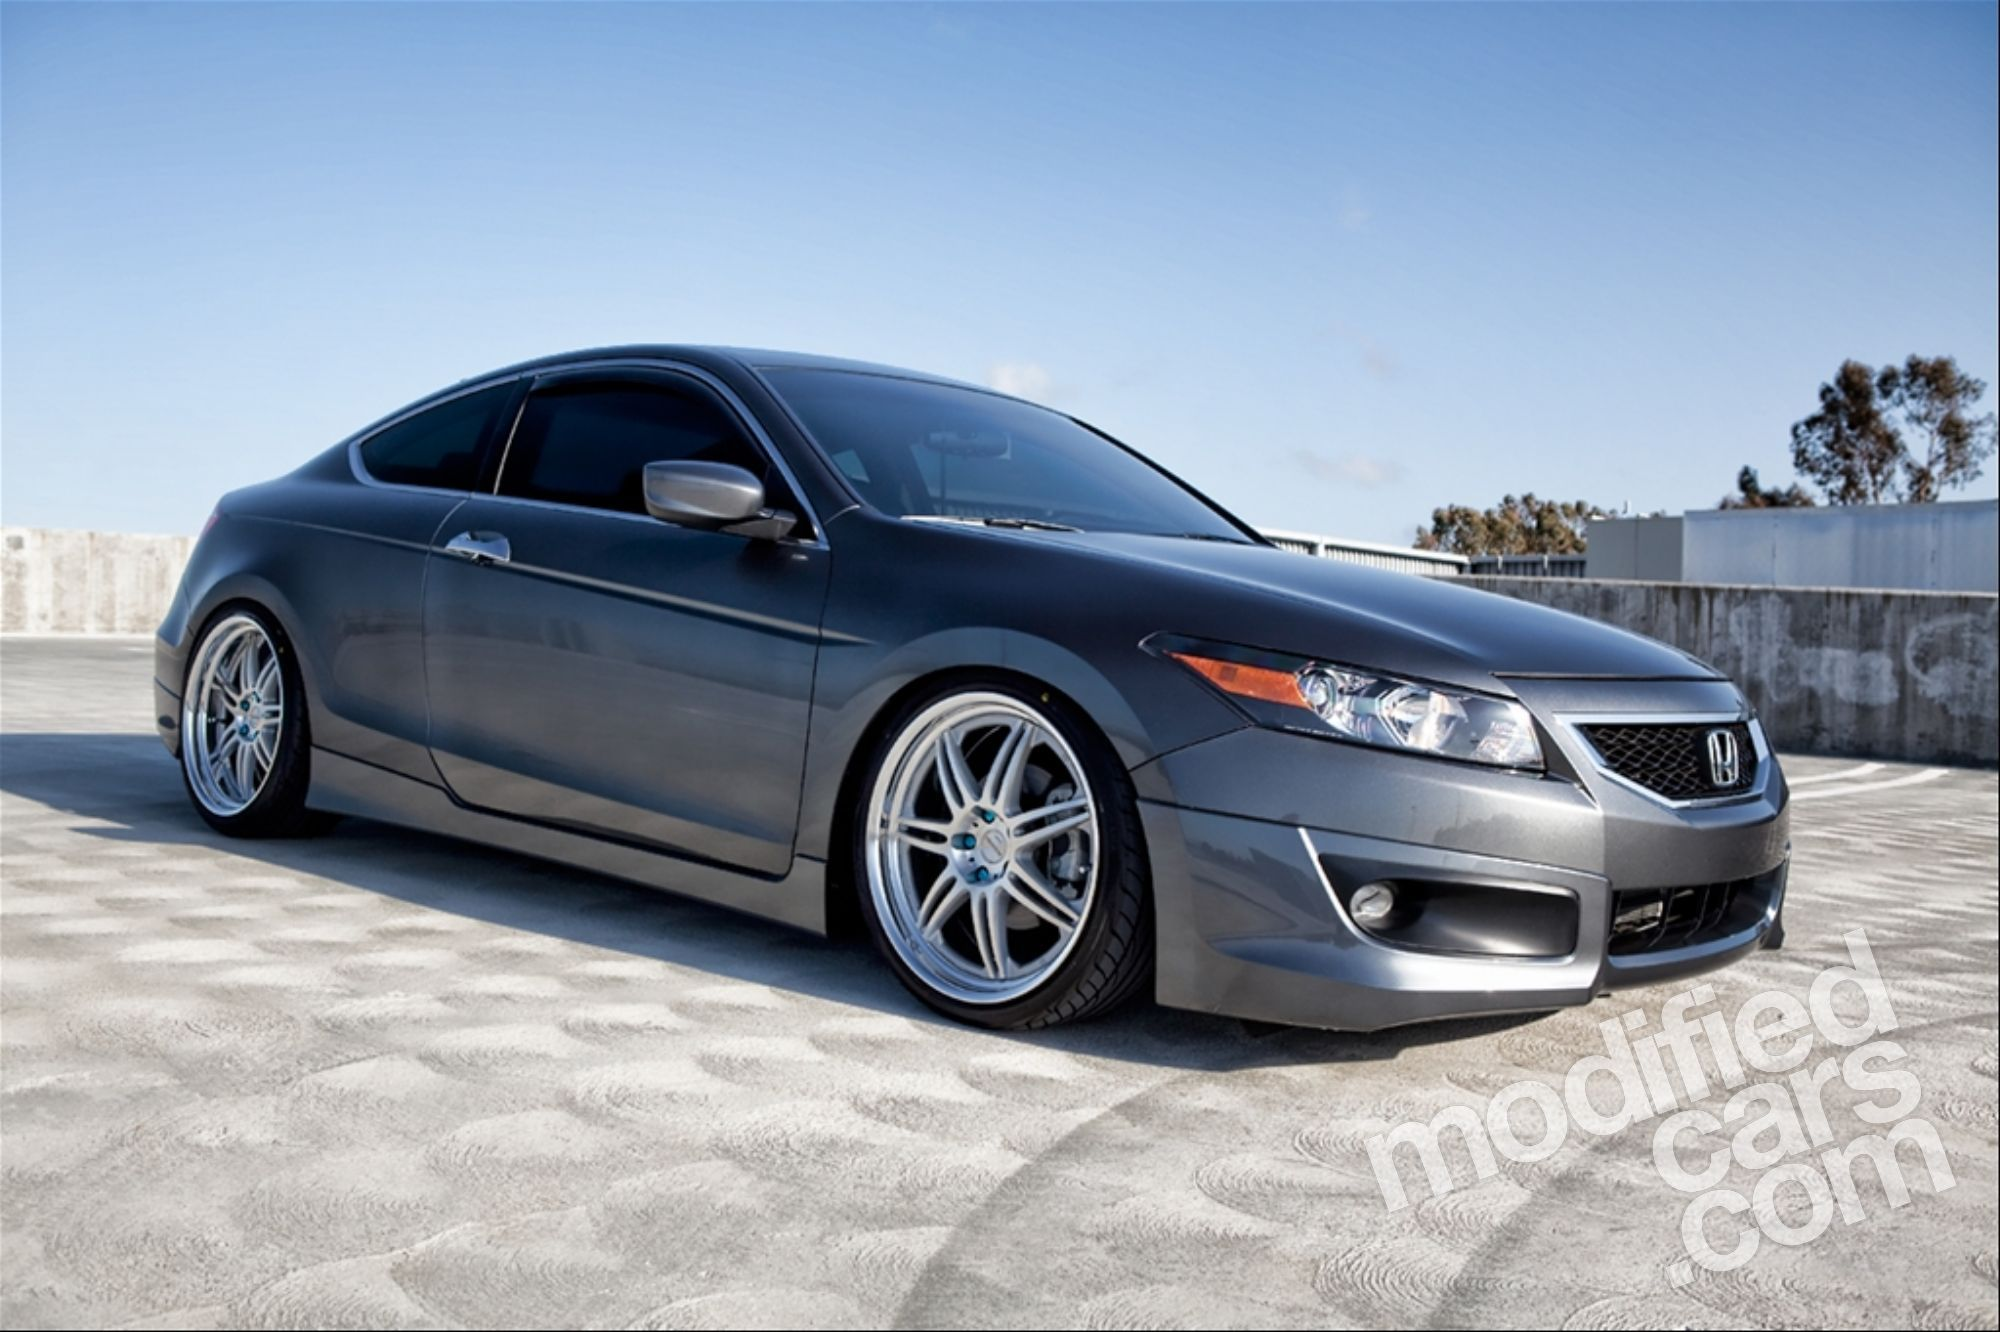 Pin By Dean Reginio On Cars In 2020 Honda Accord Honda Accord Coupe Honda